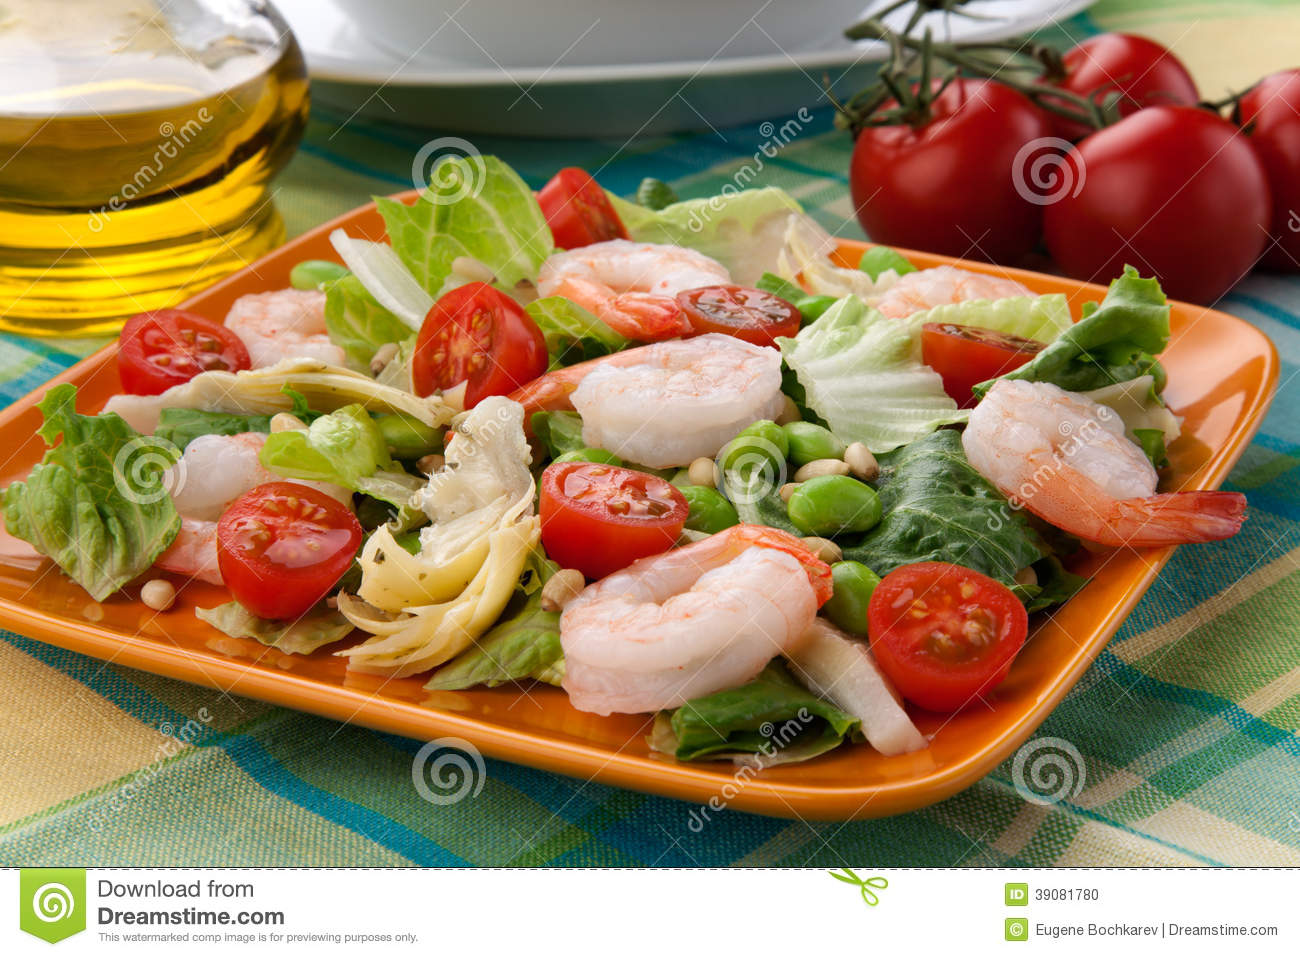 ... tomatoes, artishocke hearts, Romane lettuce leaves, fava beans, and